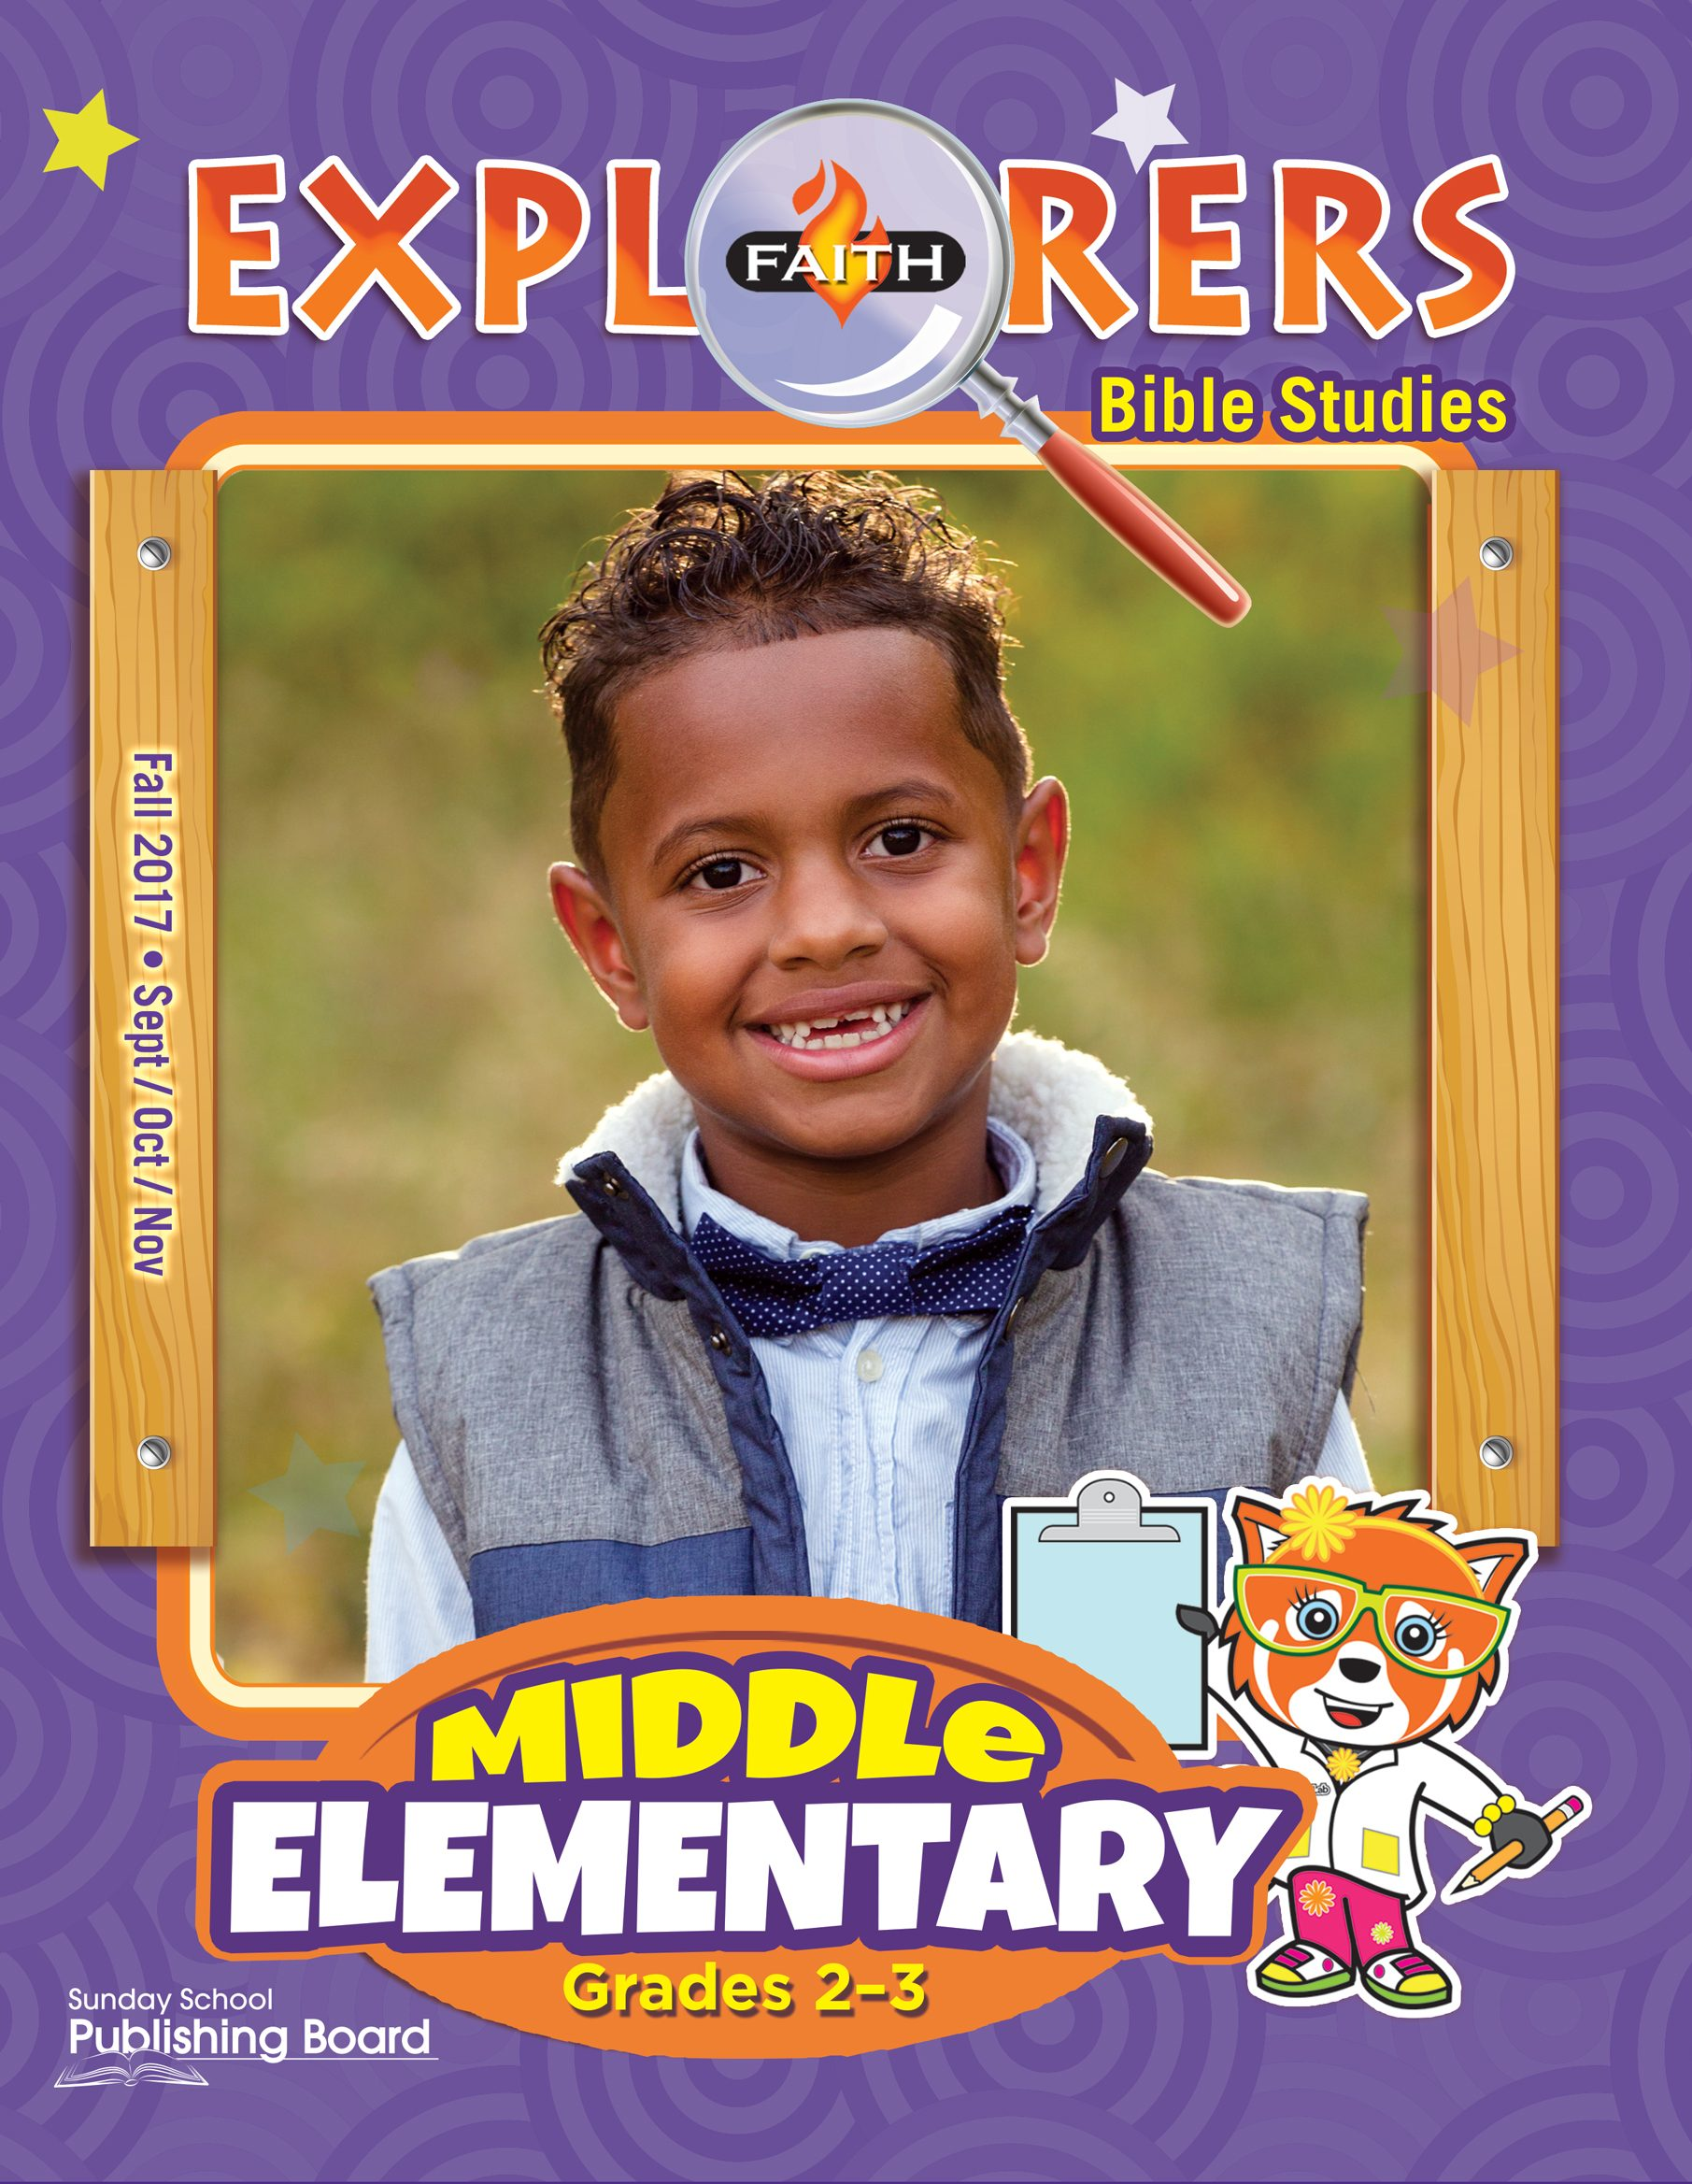 Faith Explorers Bible Studies, Middle Elementary for Grades 2-3 (Fall 2017)-Digital Edition